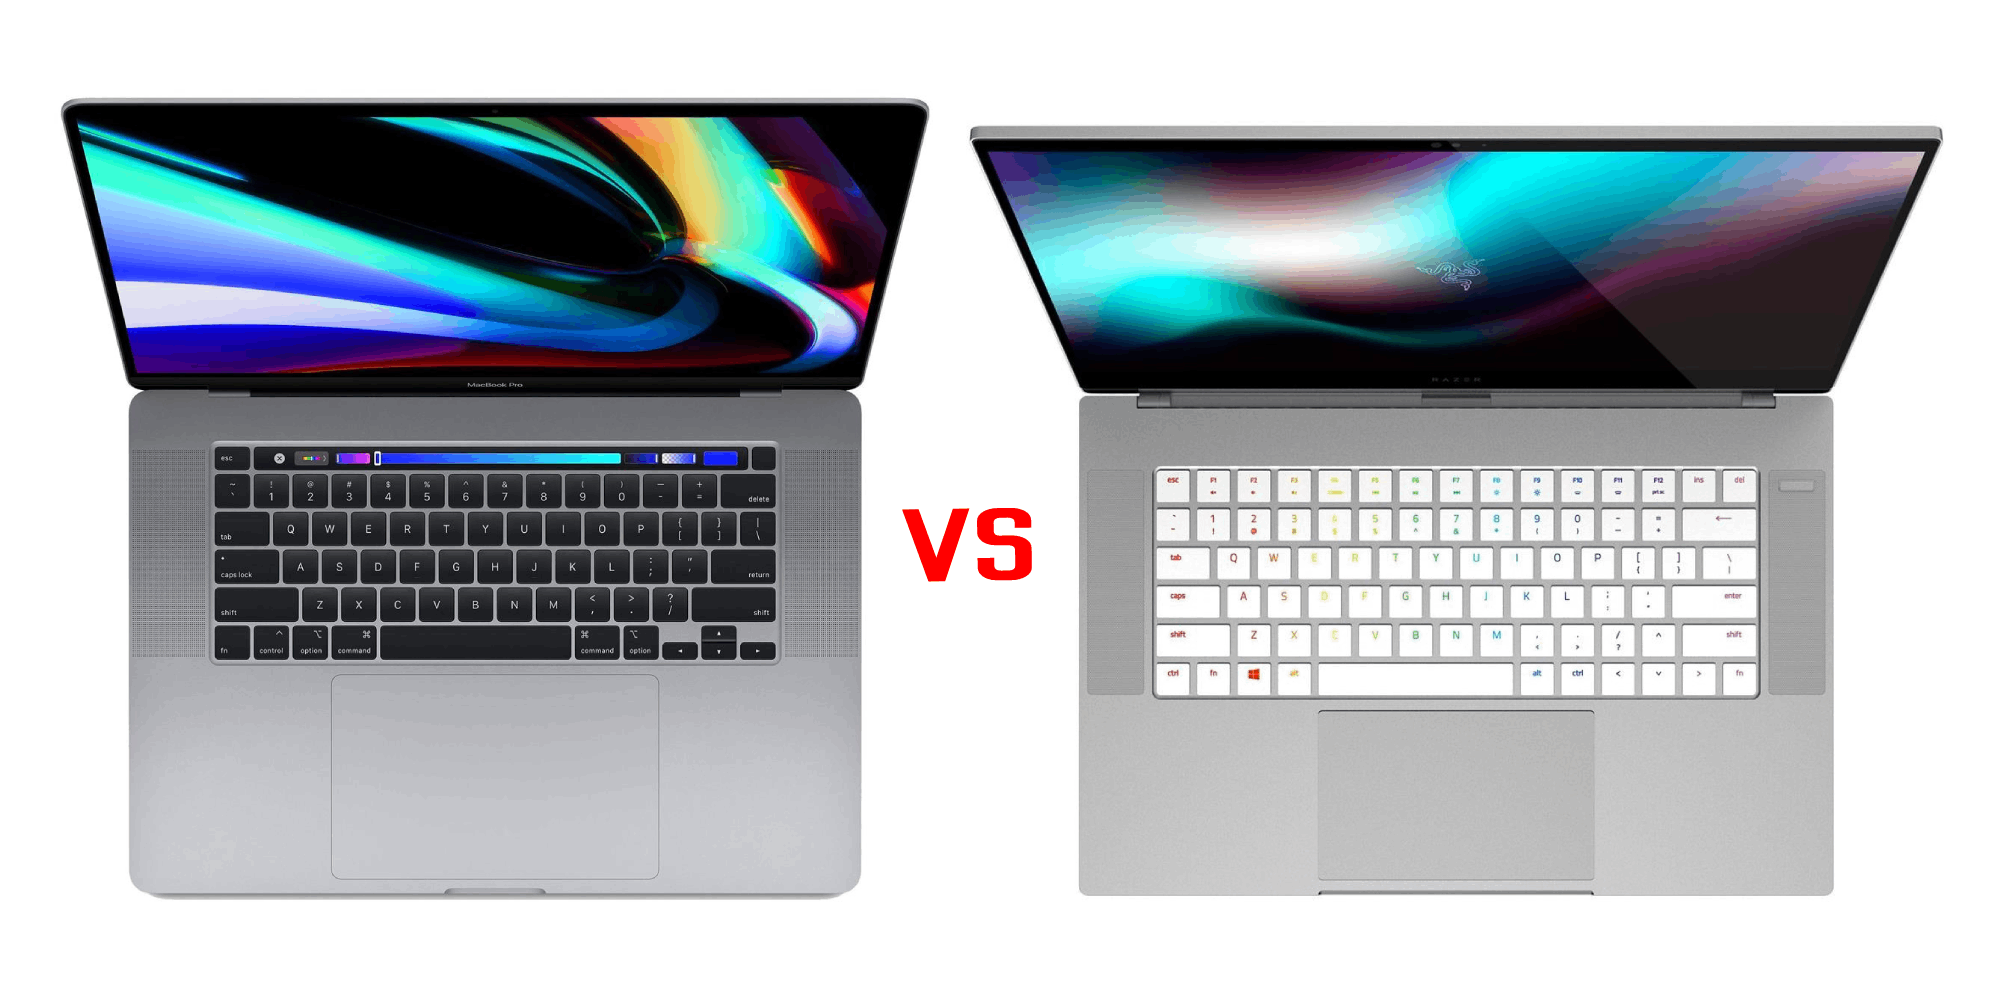 macbook pro vs razer blade 15 studio image